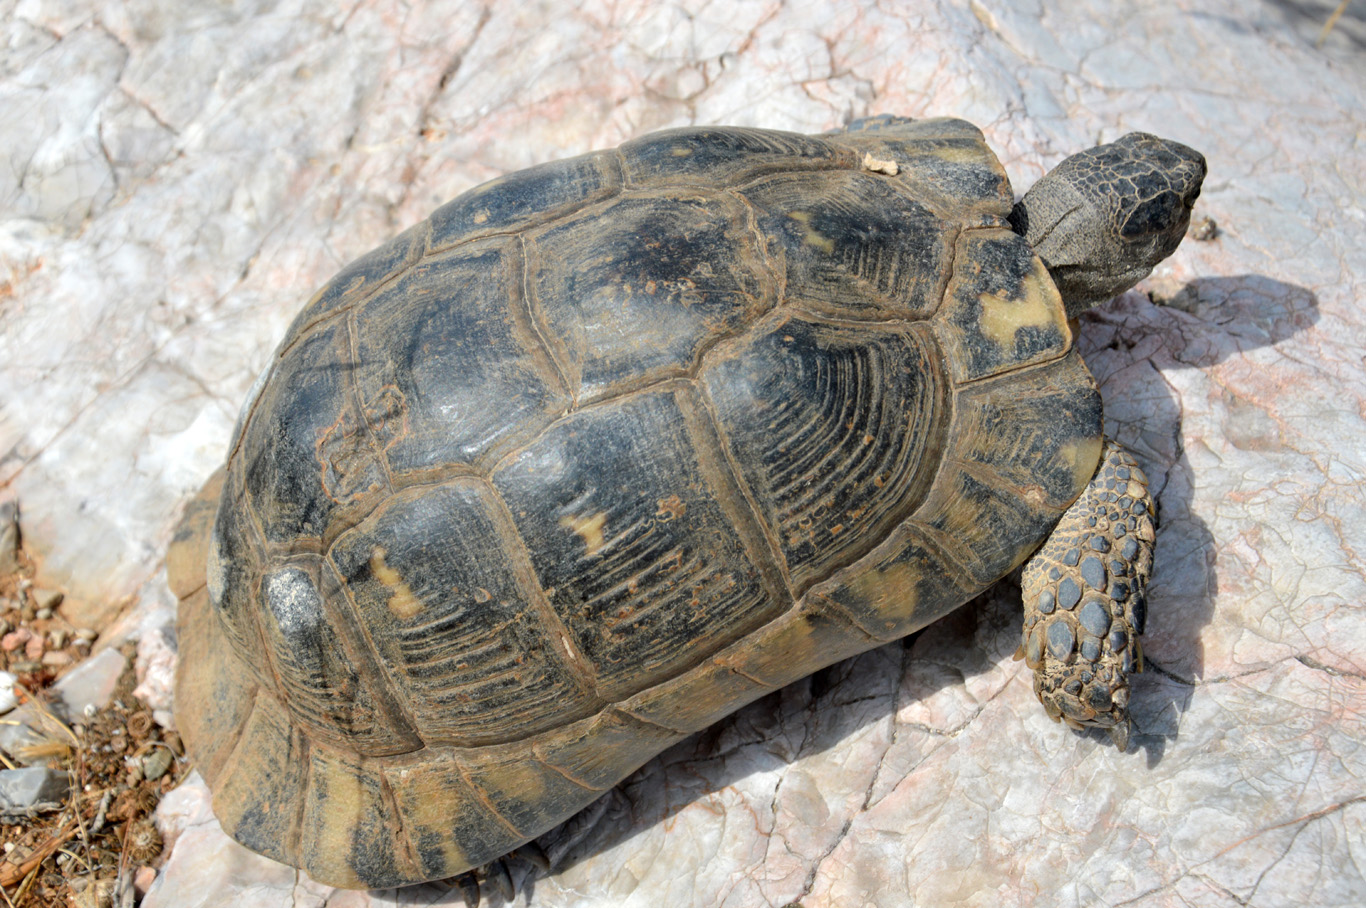 Tortoises can be found everywhere